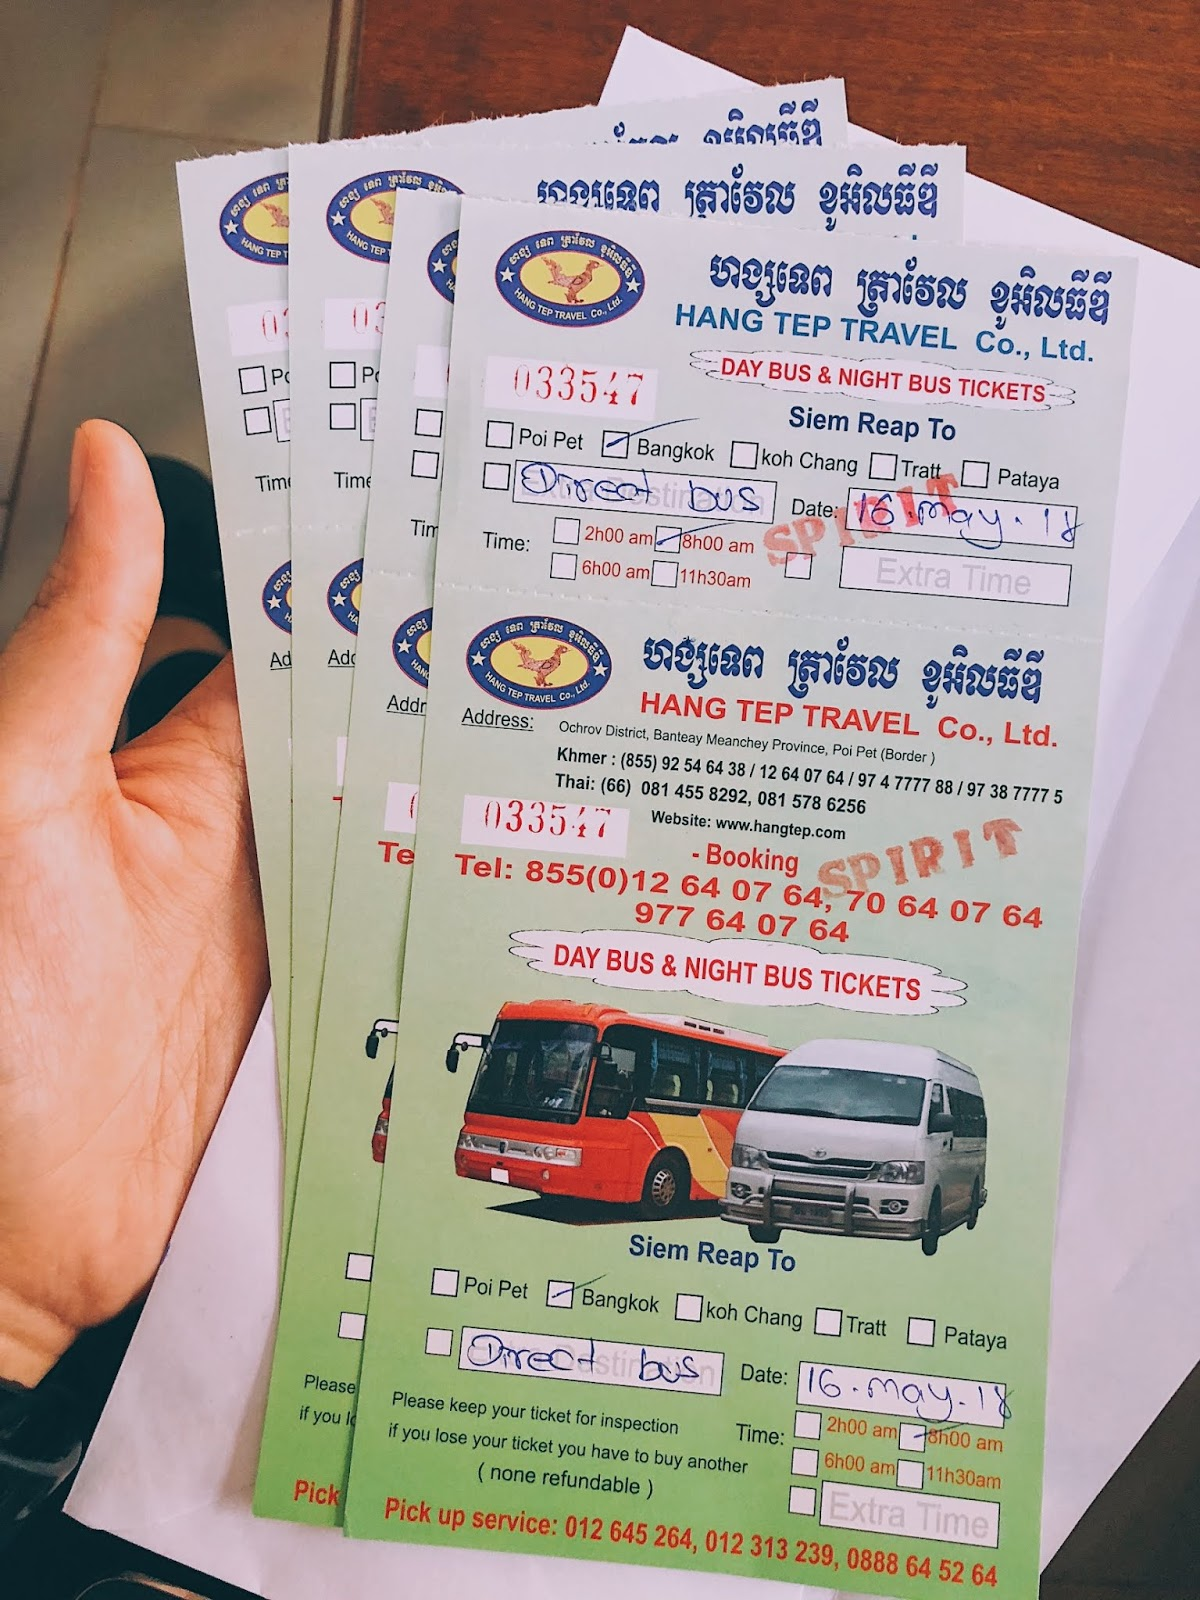 Giant Ibis bus ticket from Siem Reap to Bangkok